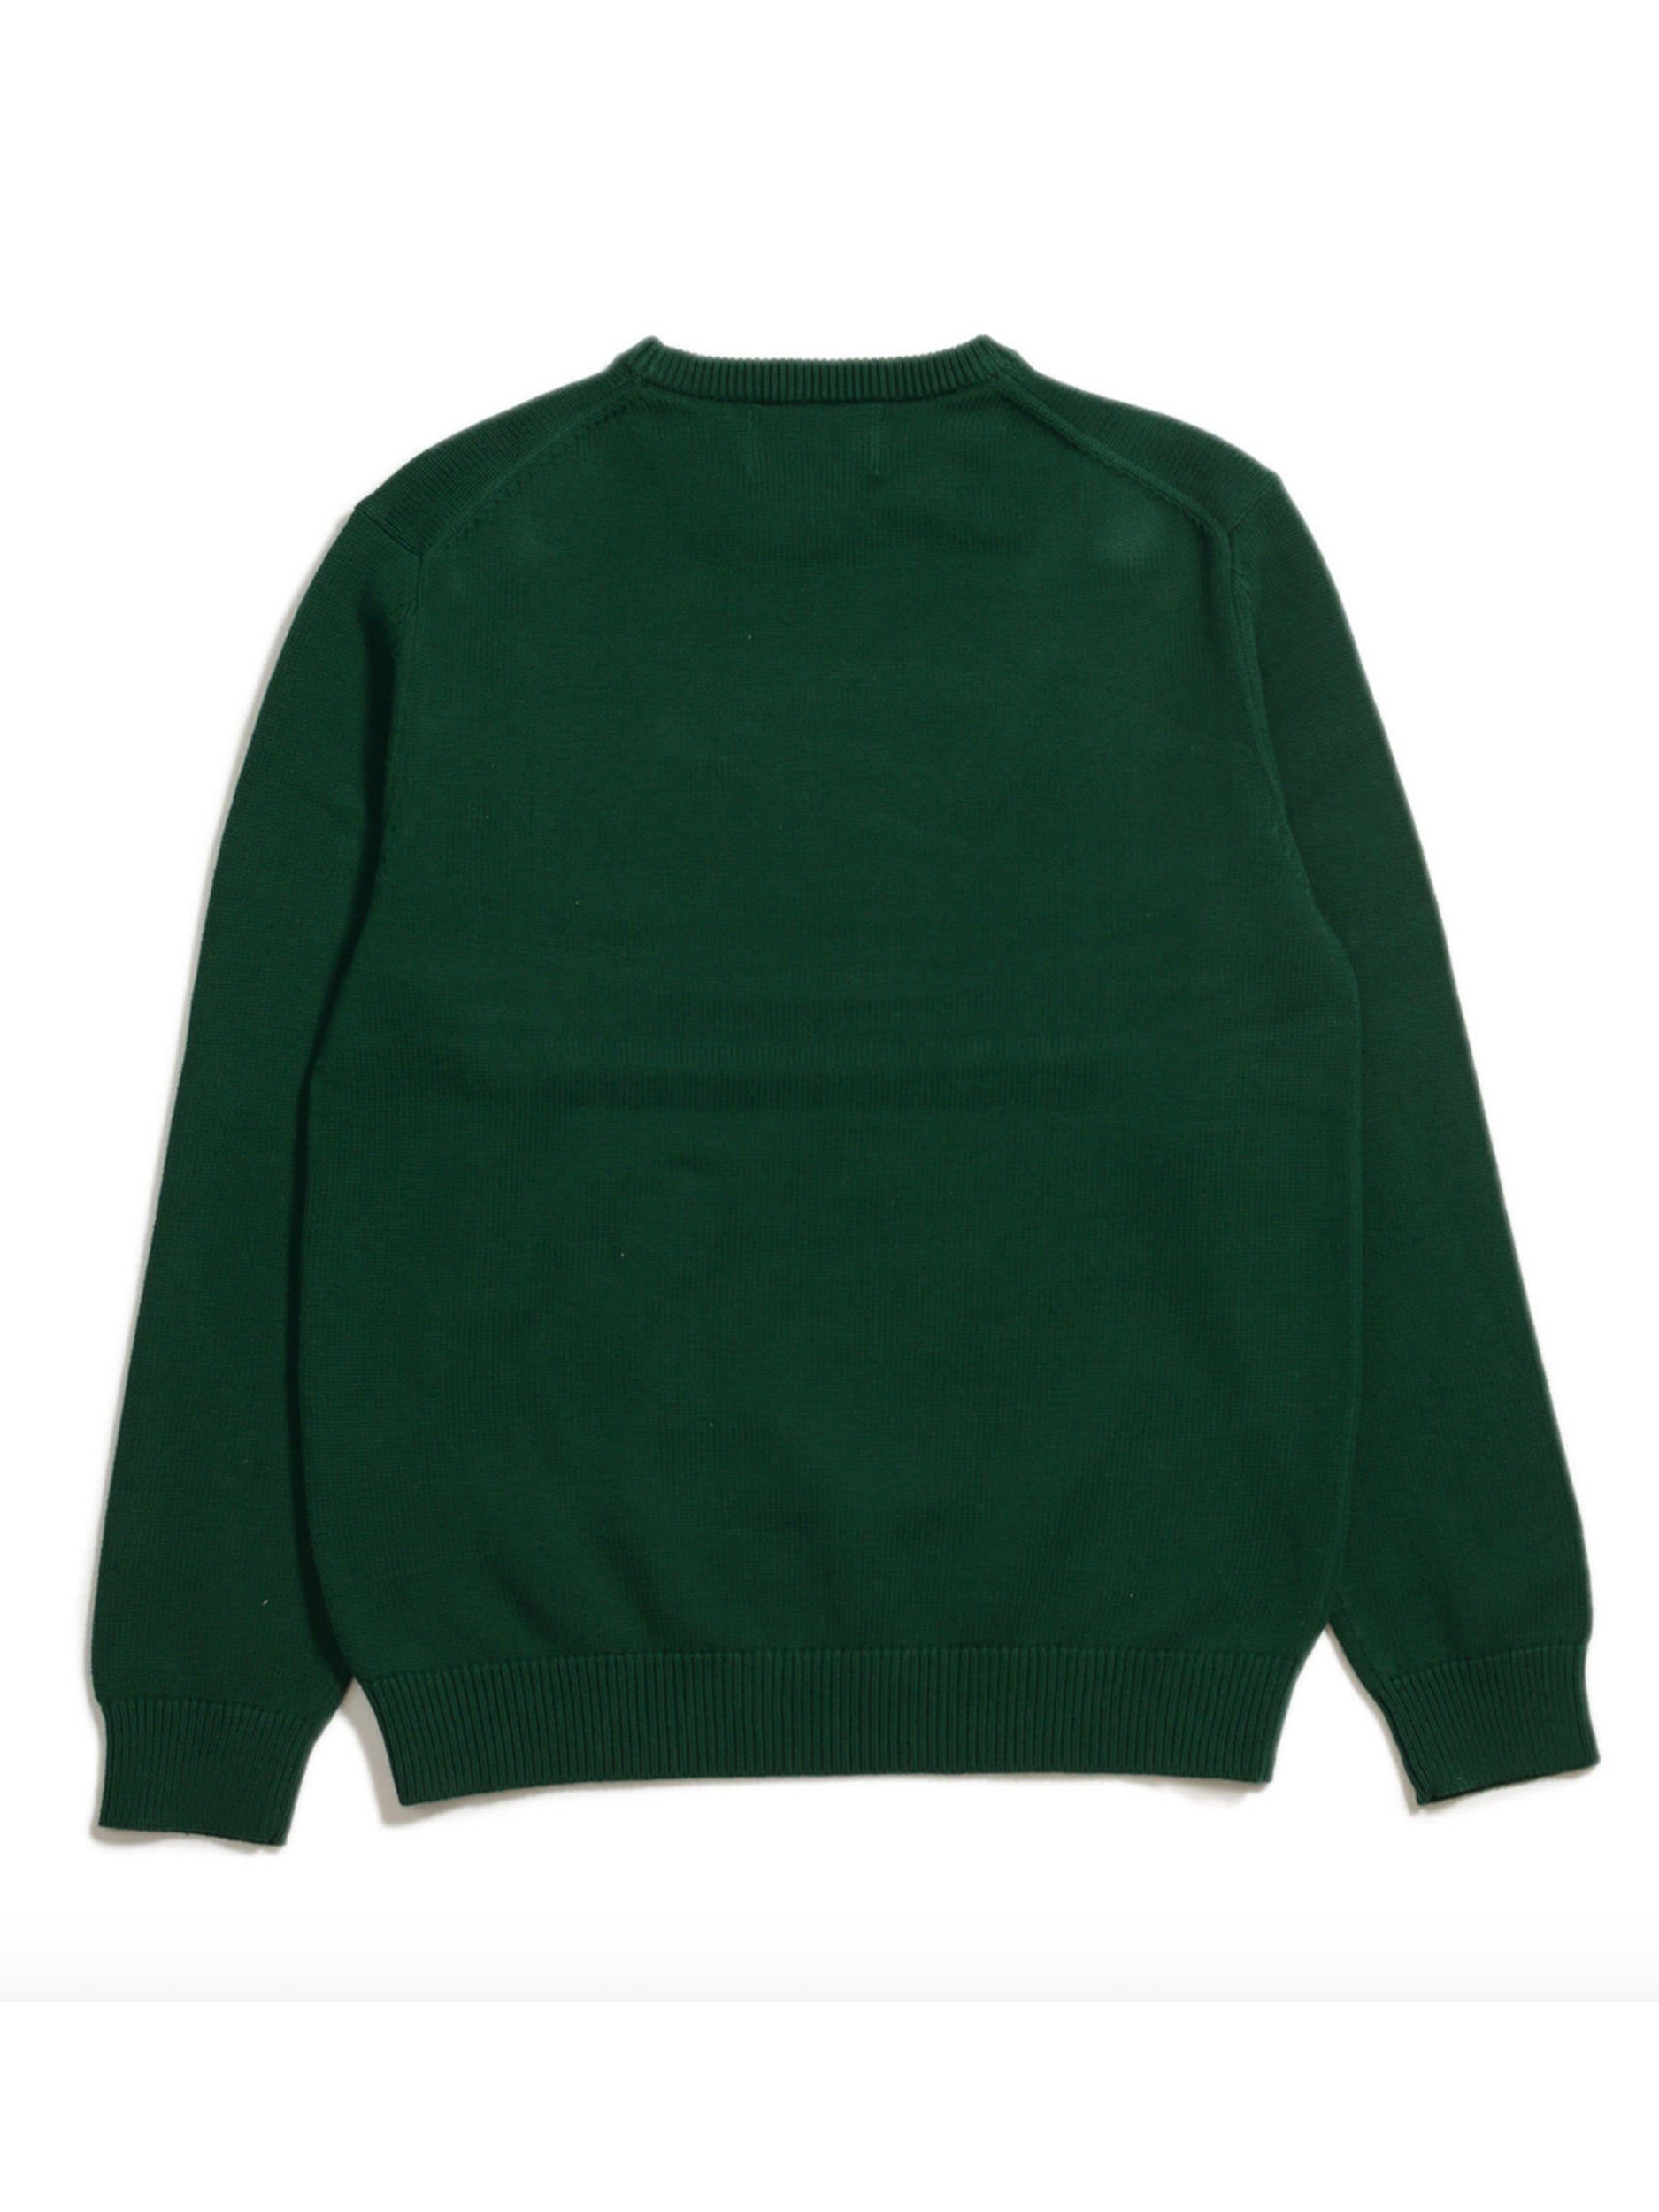 Orange-Intarsia Cotton Sweater (Green) Back